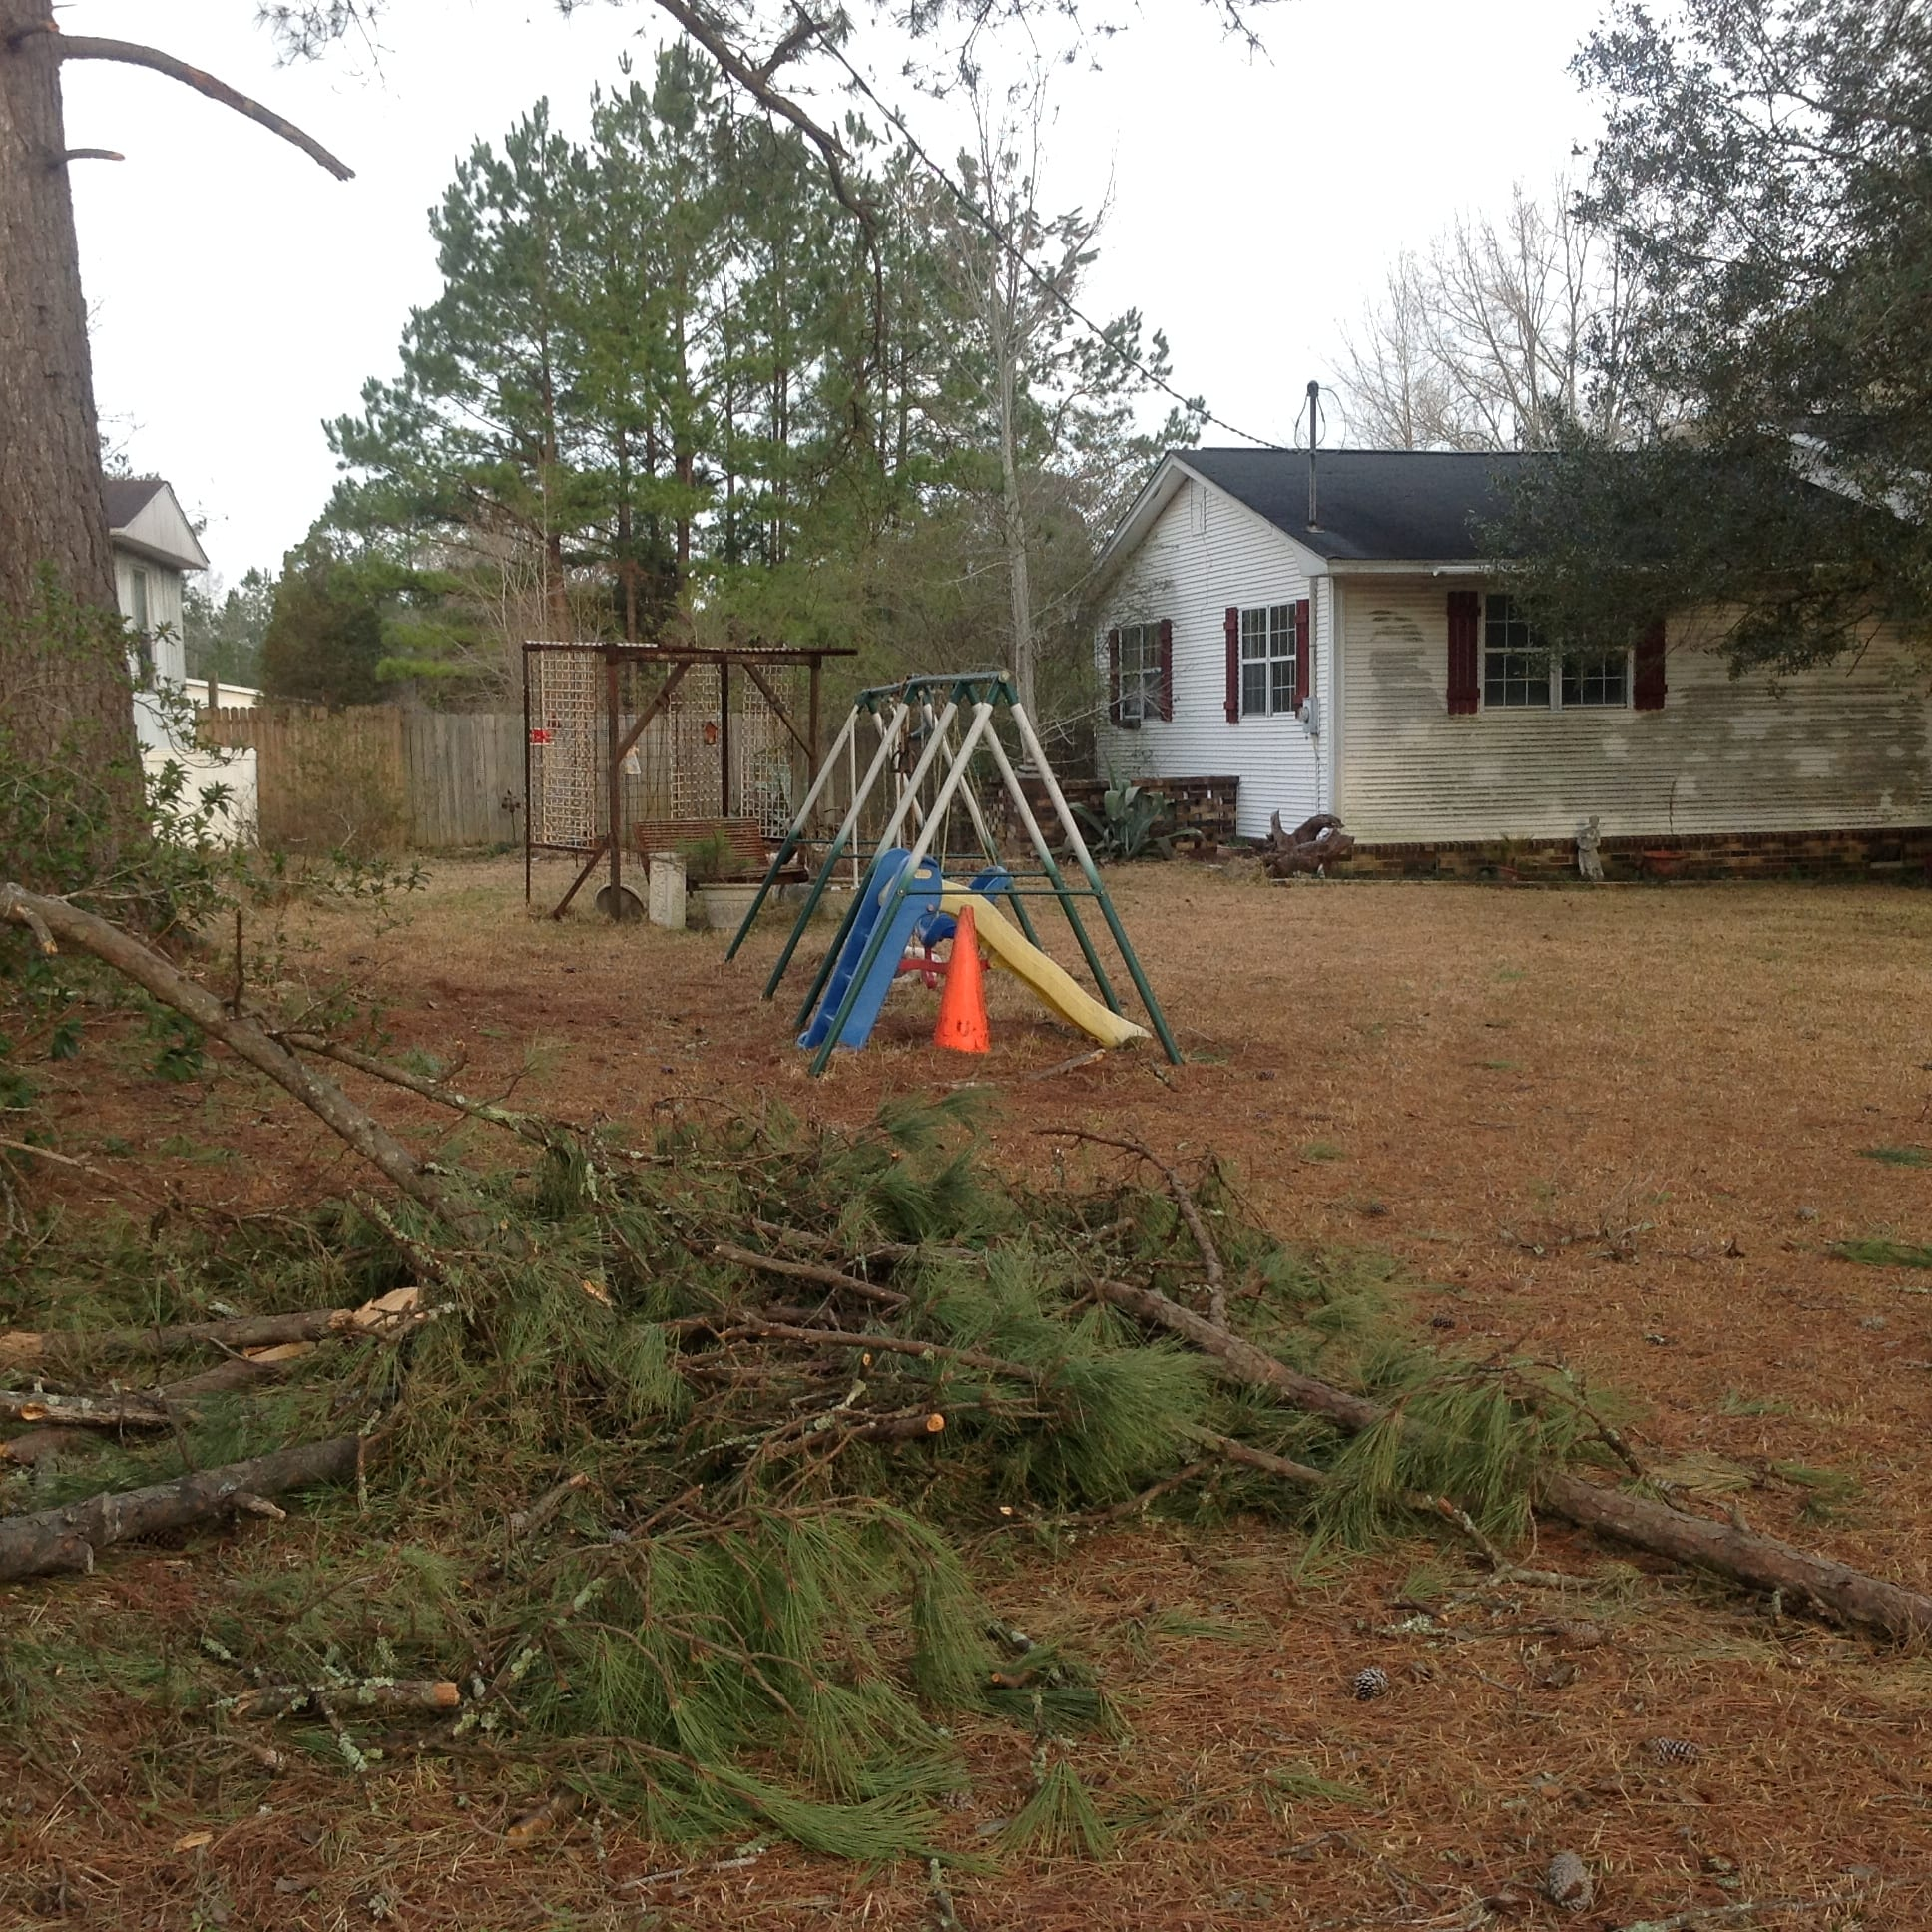 Debris Removal Services Landscaping Clearing Trimming